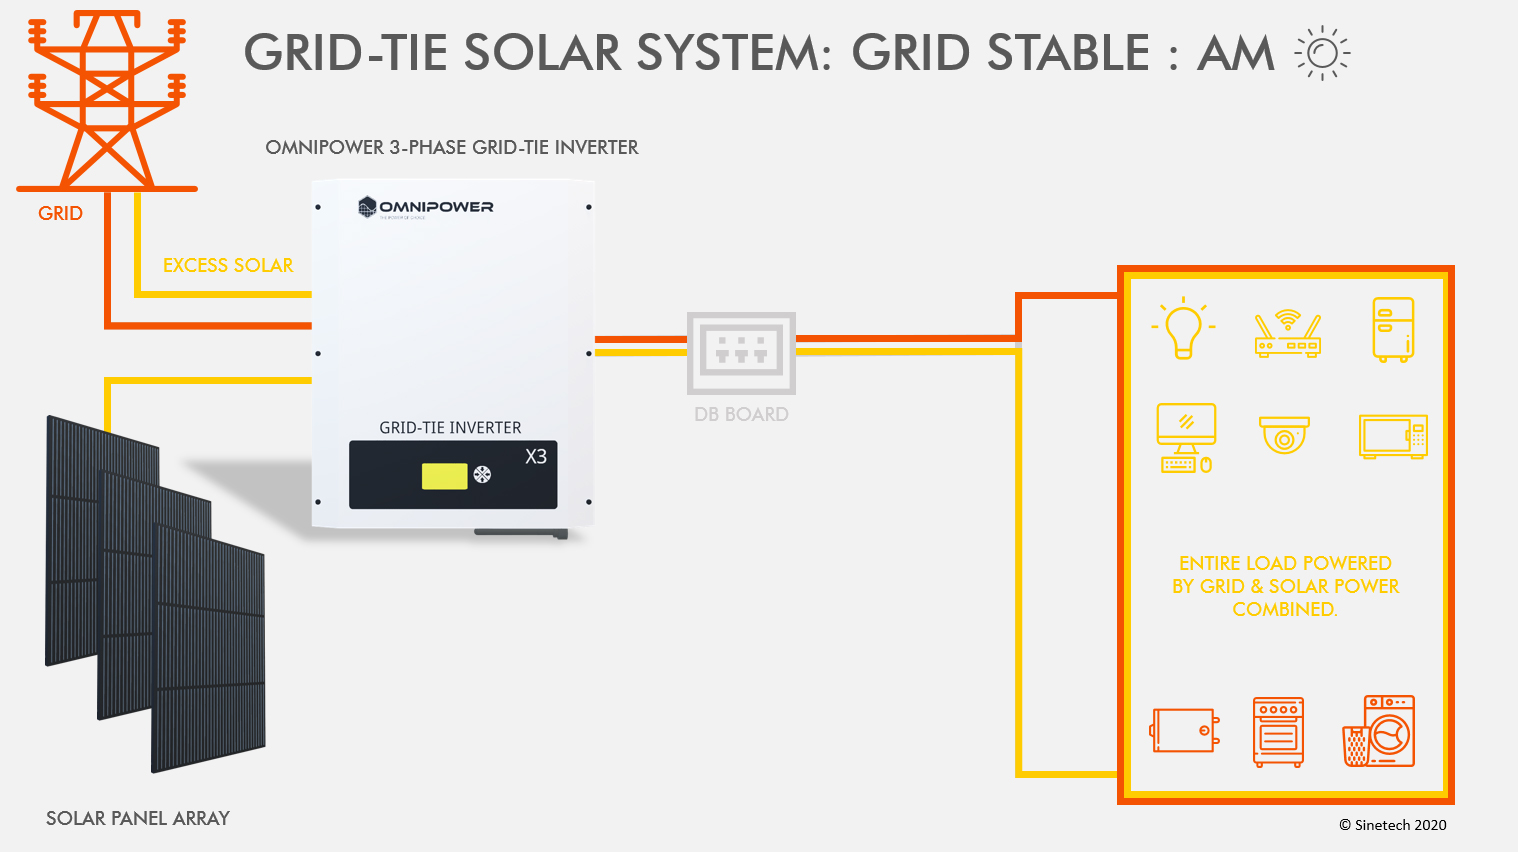 Grid Tie Solar System - Grid Stable - AM